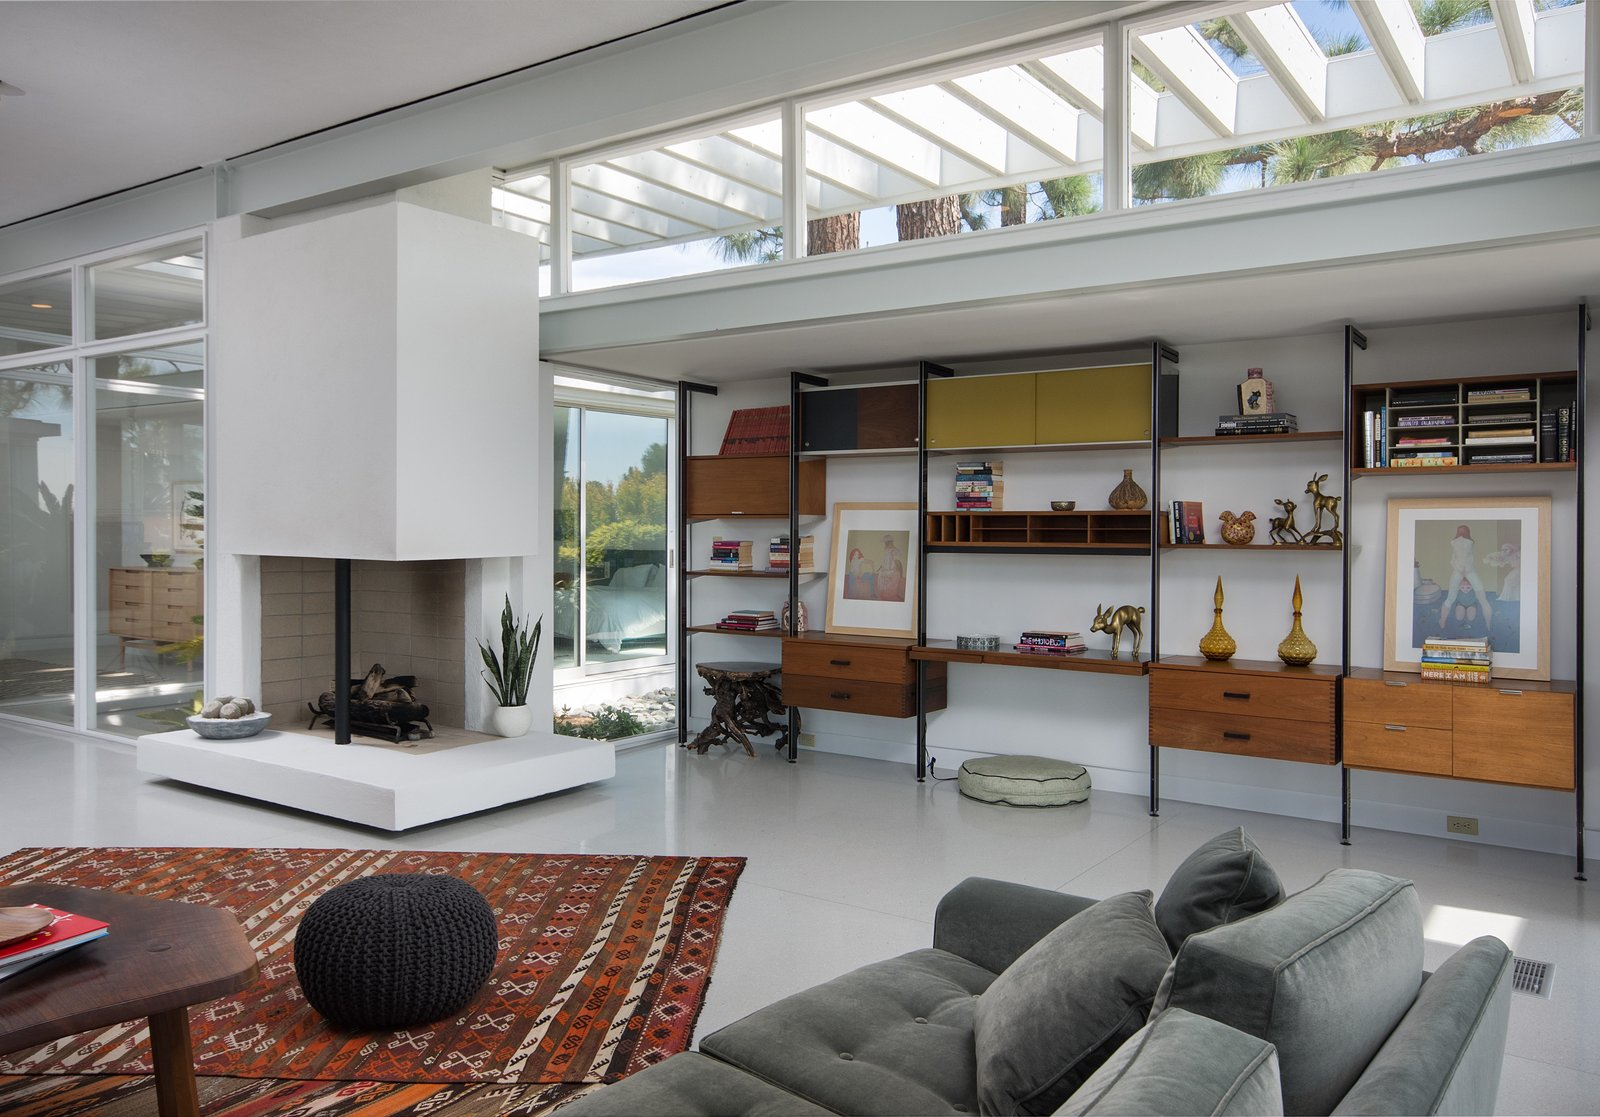 Living Room, Sofa, Corner Fireplace, Wood Burning Fireplace, Desk, Rug Floor, Shelves, Ottomans, and Coffee Tables The open-plan living room is anchored by a wood-burning two-sided fireplace.  Photo 3 of 8 in Rooney Mara Asks $3.45M For a Restored Midcentury Stunner in L.A.